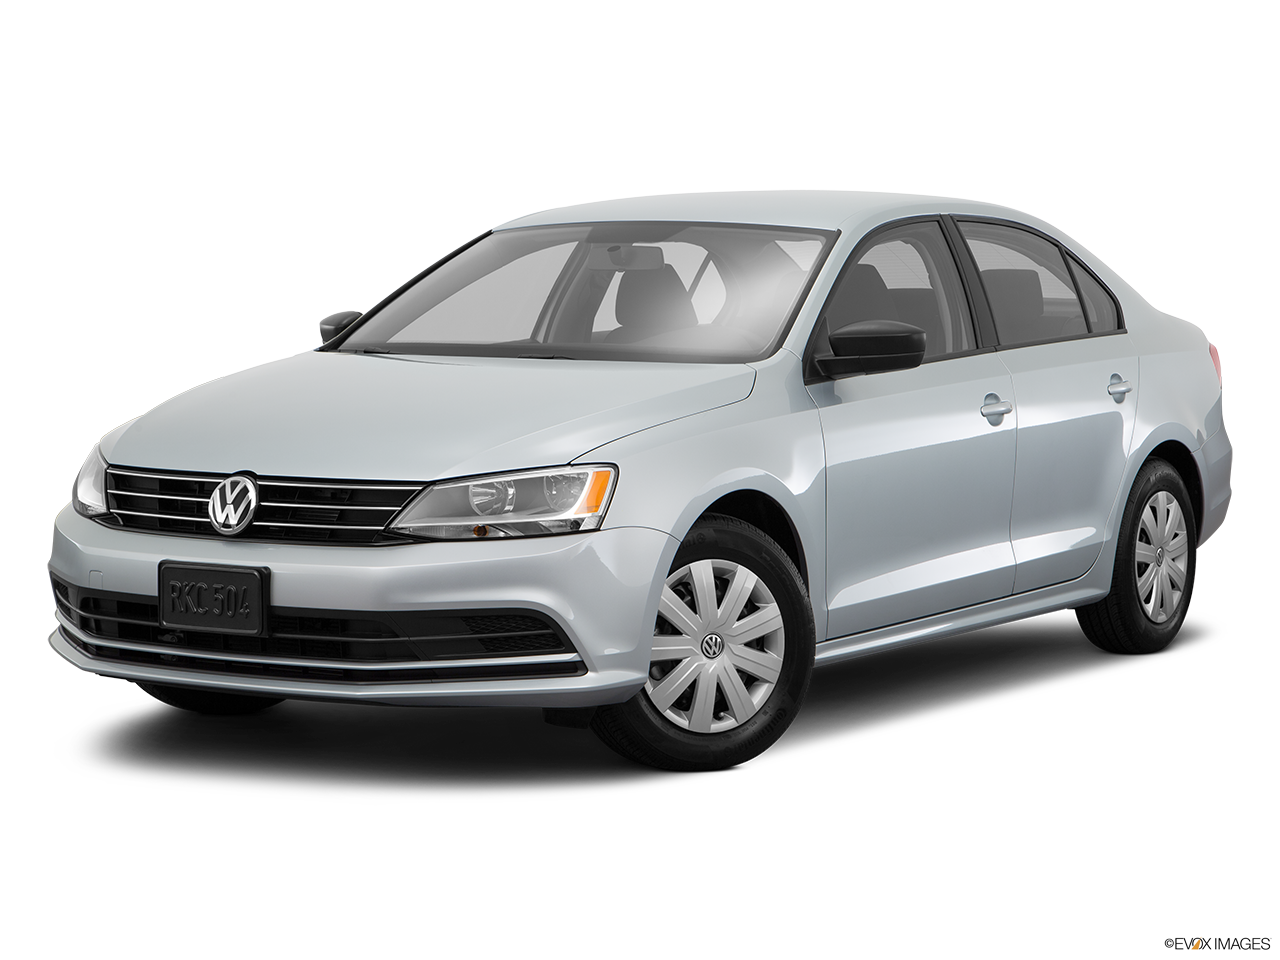 Test Drive A 2016 Volkswagen Jetta at Herman Cook Volkswagen in San Diego